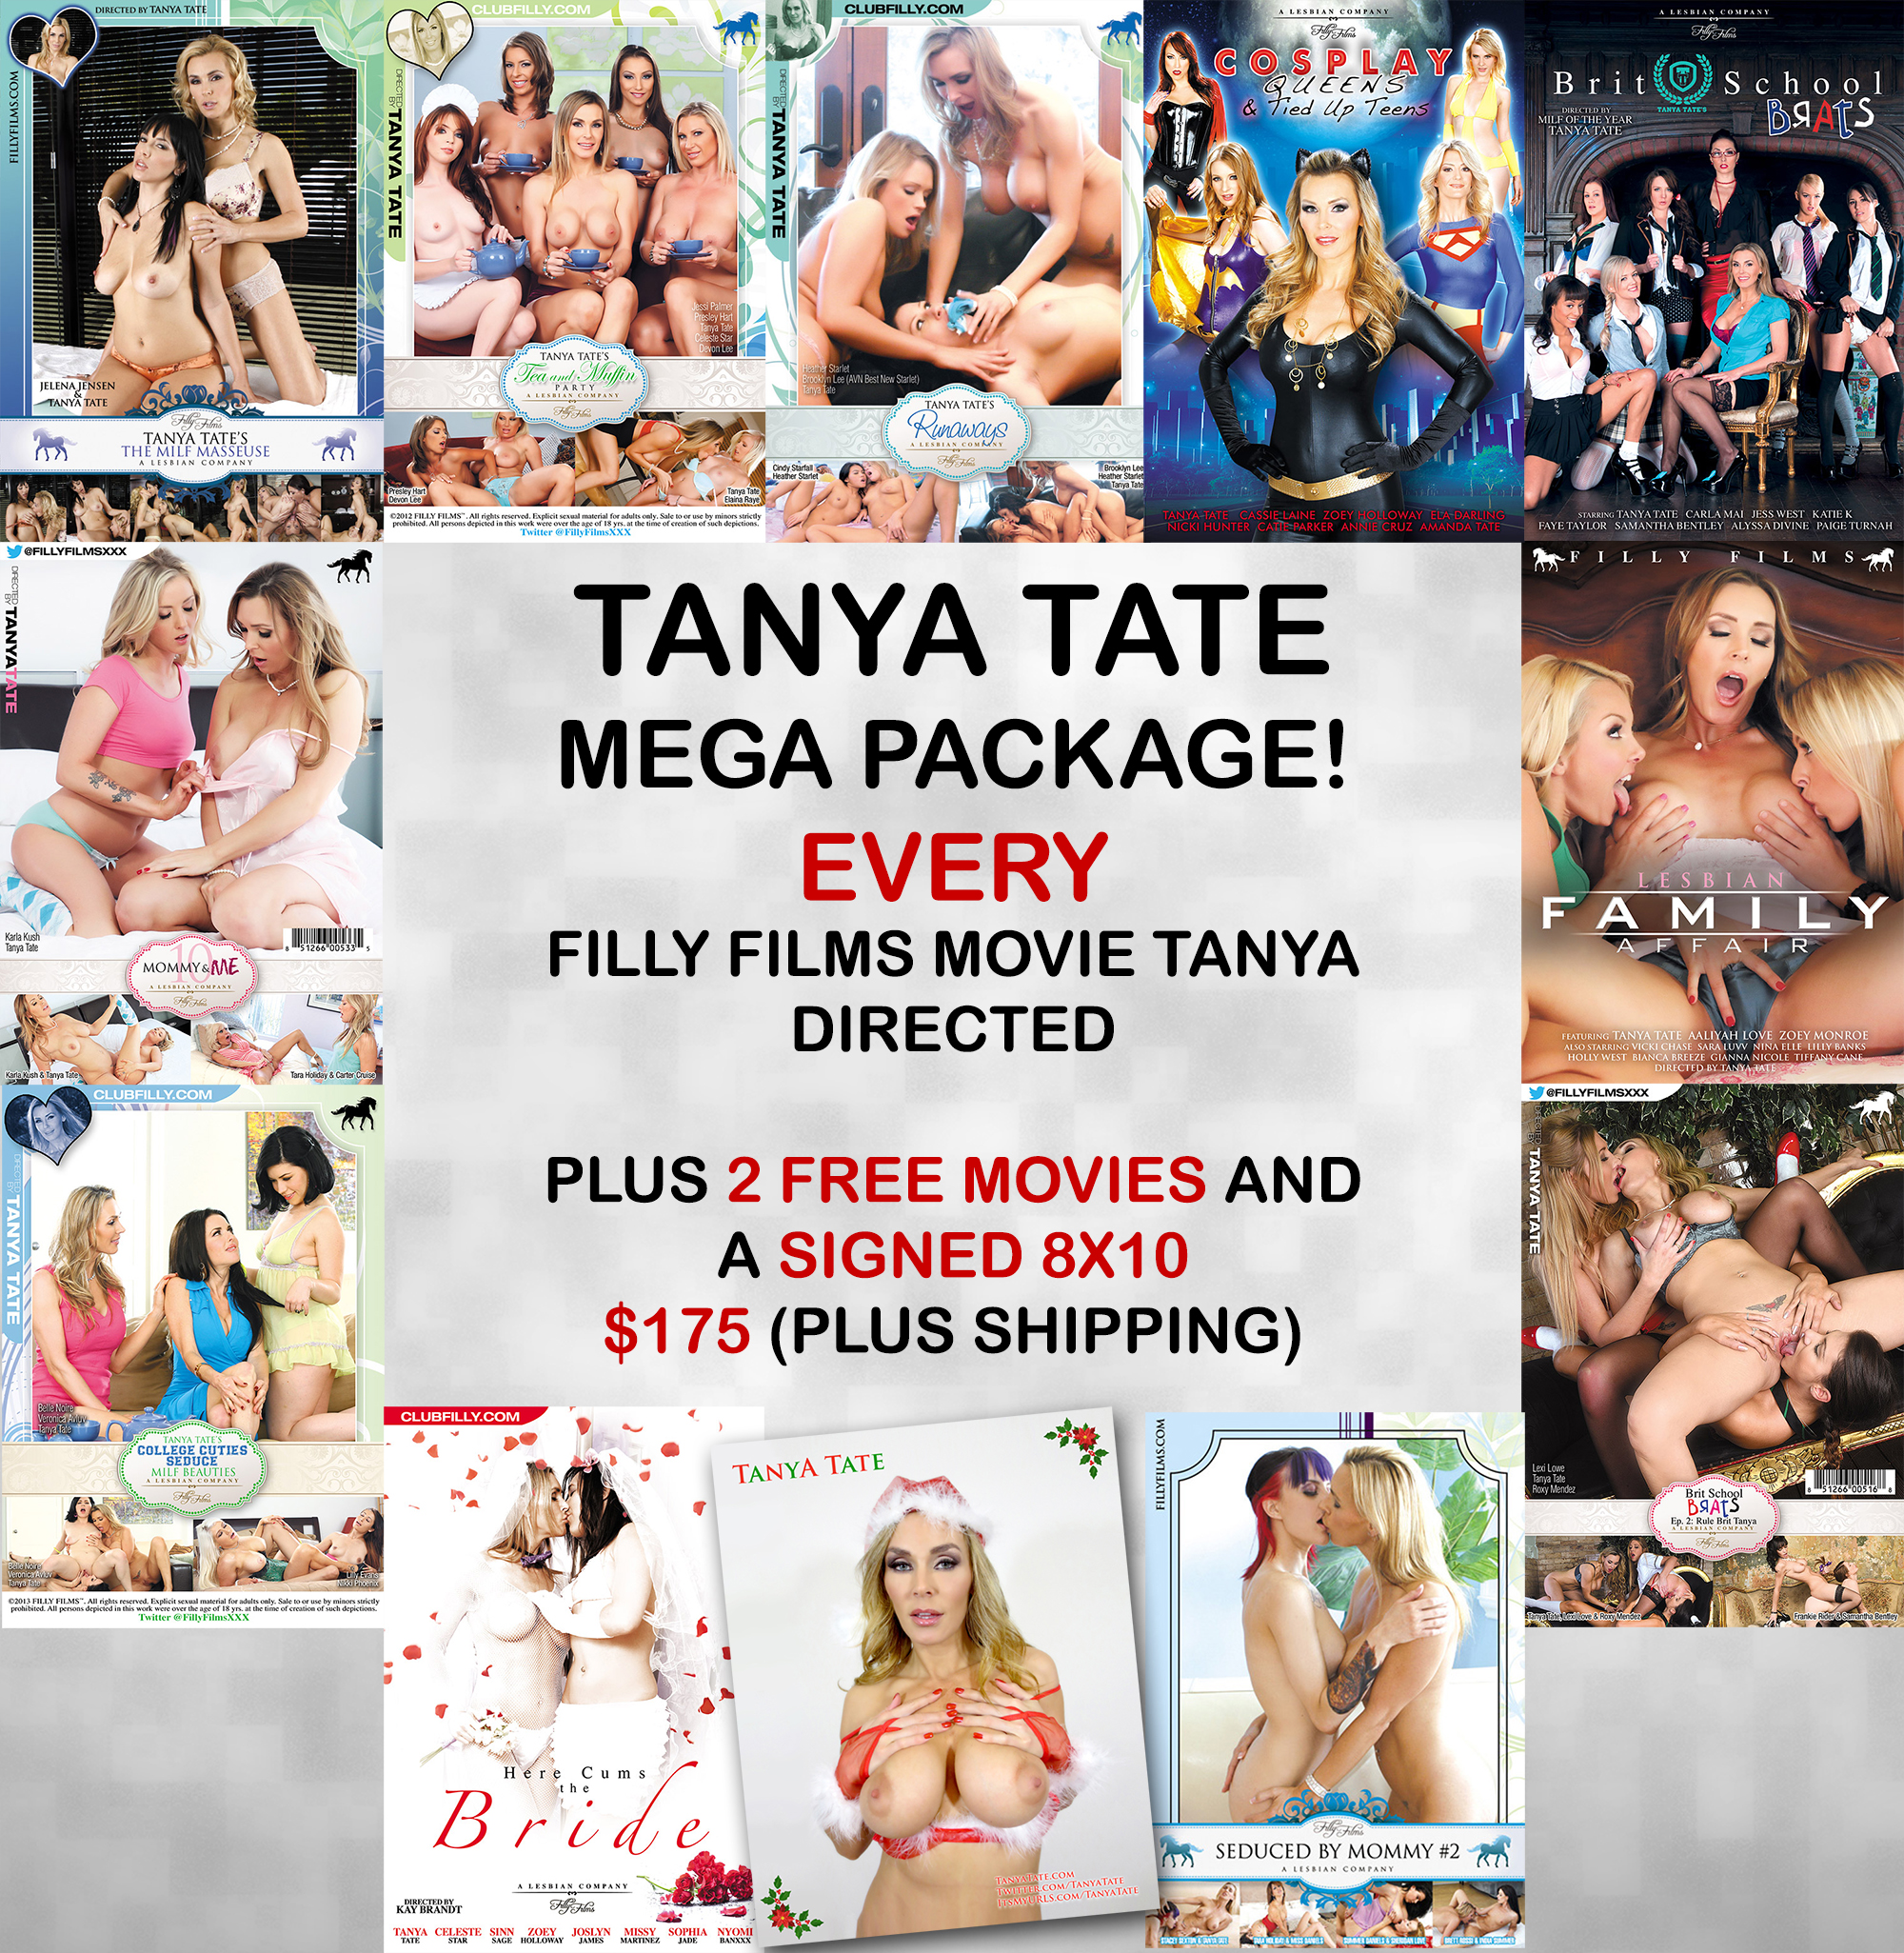 Tanya Tate Filly Films DVD Mega Crate - SALE ENDS DEC 5th!